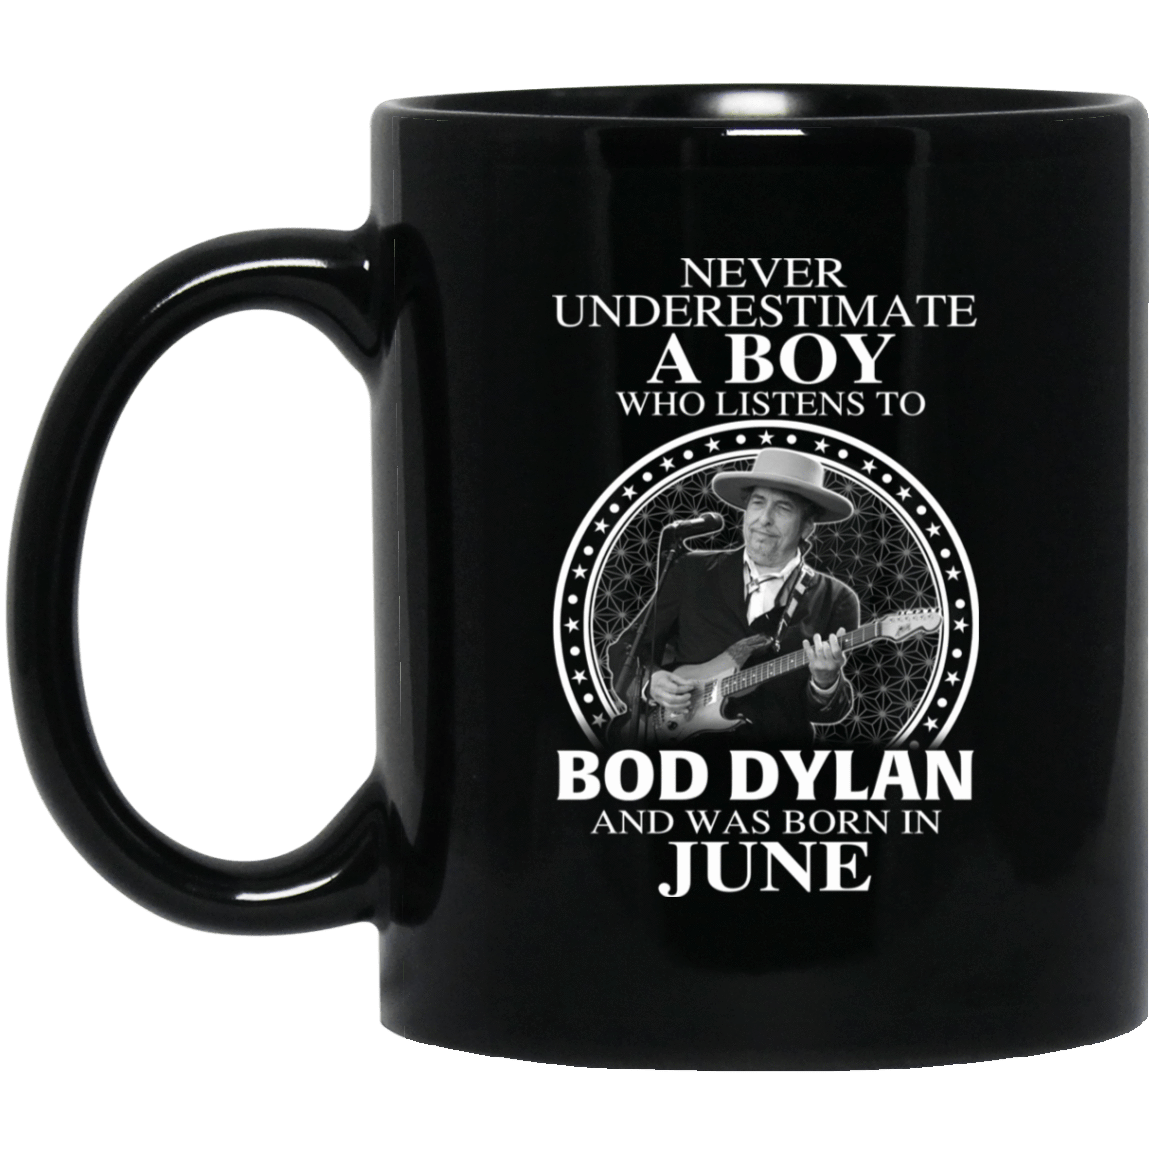 A Boy Who Listens To Bob Dylan And Was Born In June Mug 1065-10181-76154920-49307 - Tee Ript